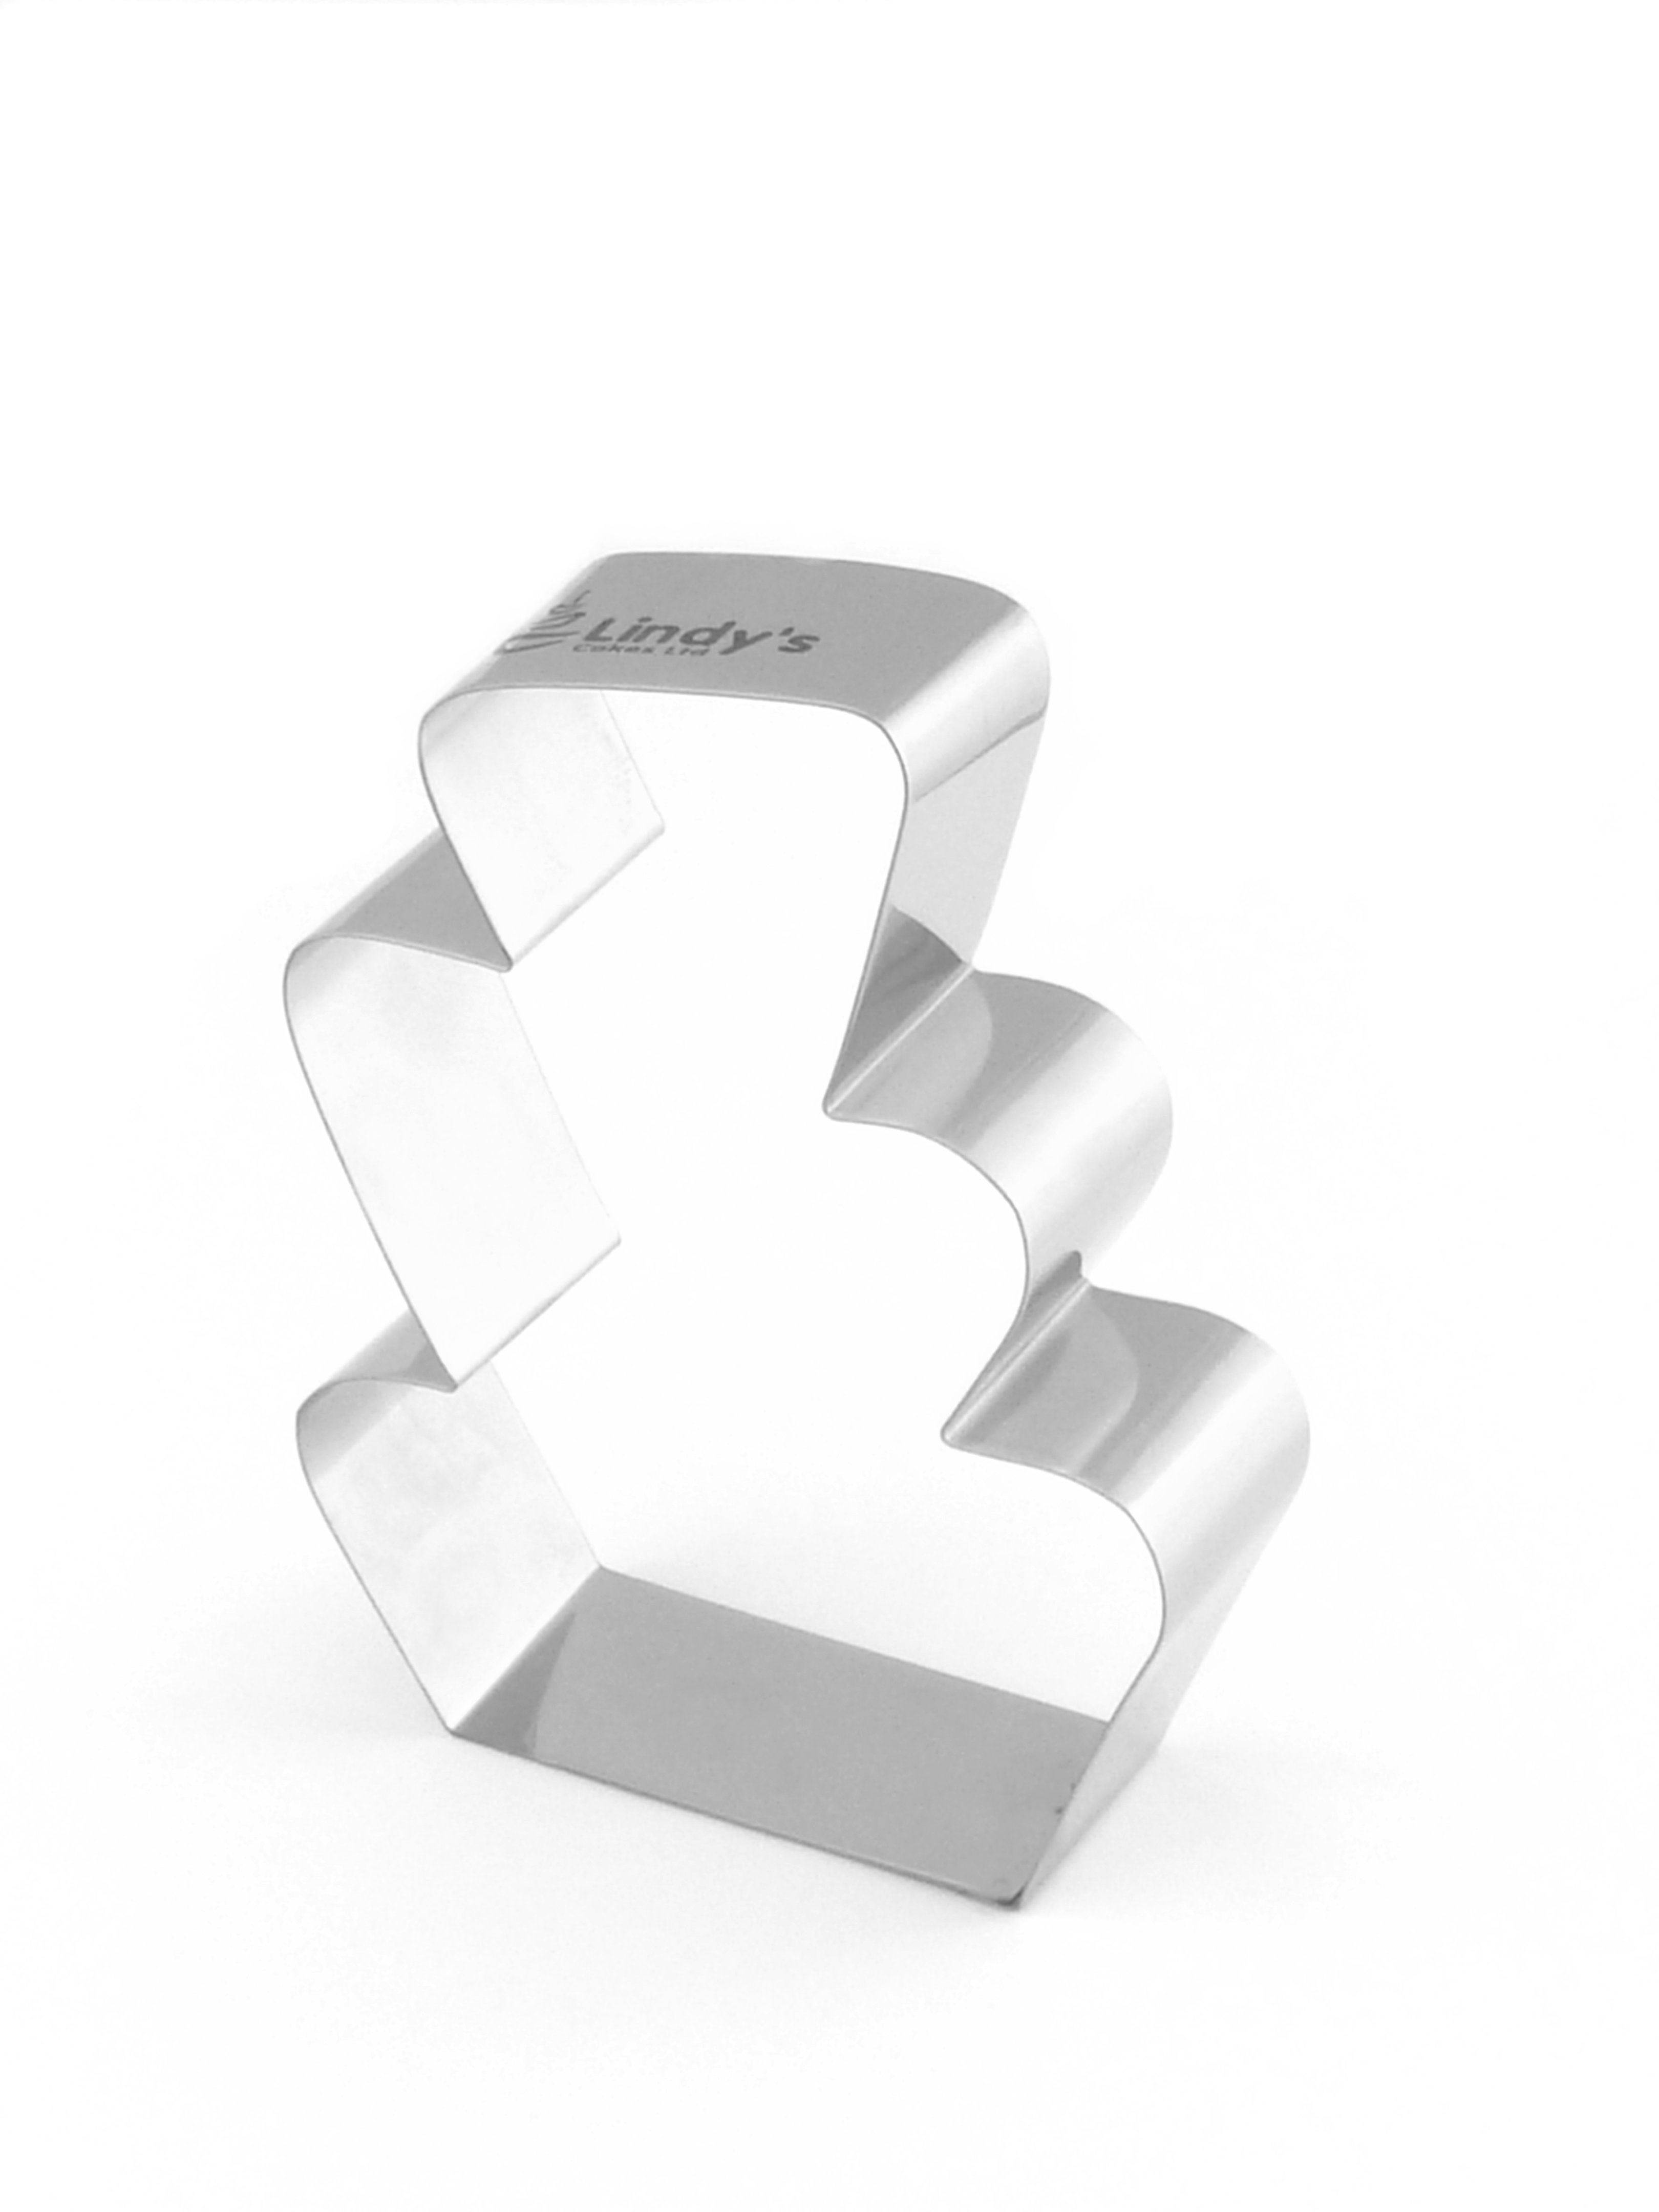 Wonky Wedding Cake Cookie Cutter (Lindy's) SKU18024